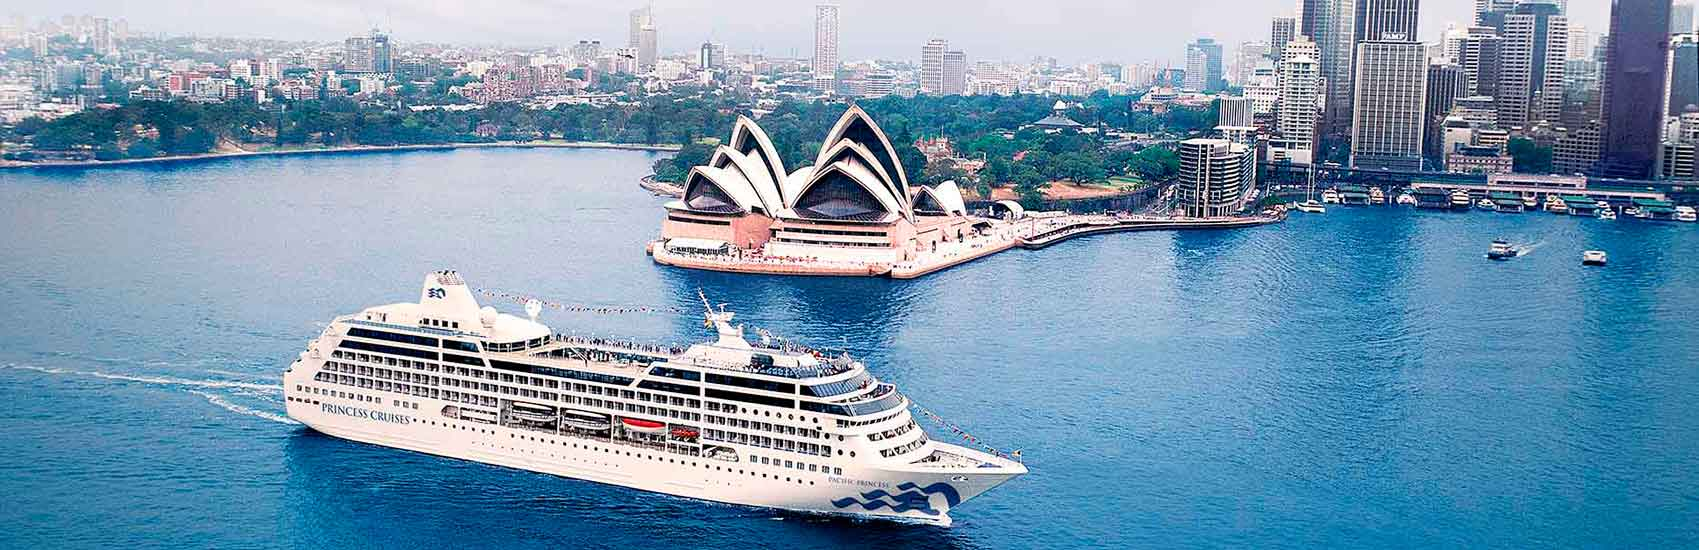 Princess Cruises 2023 World Cruise 1